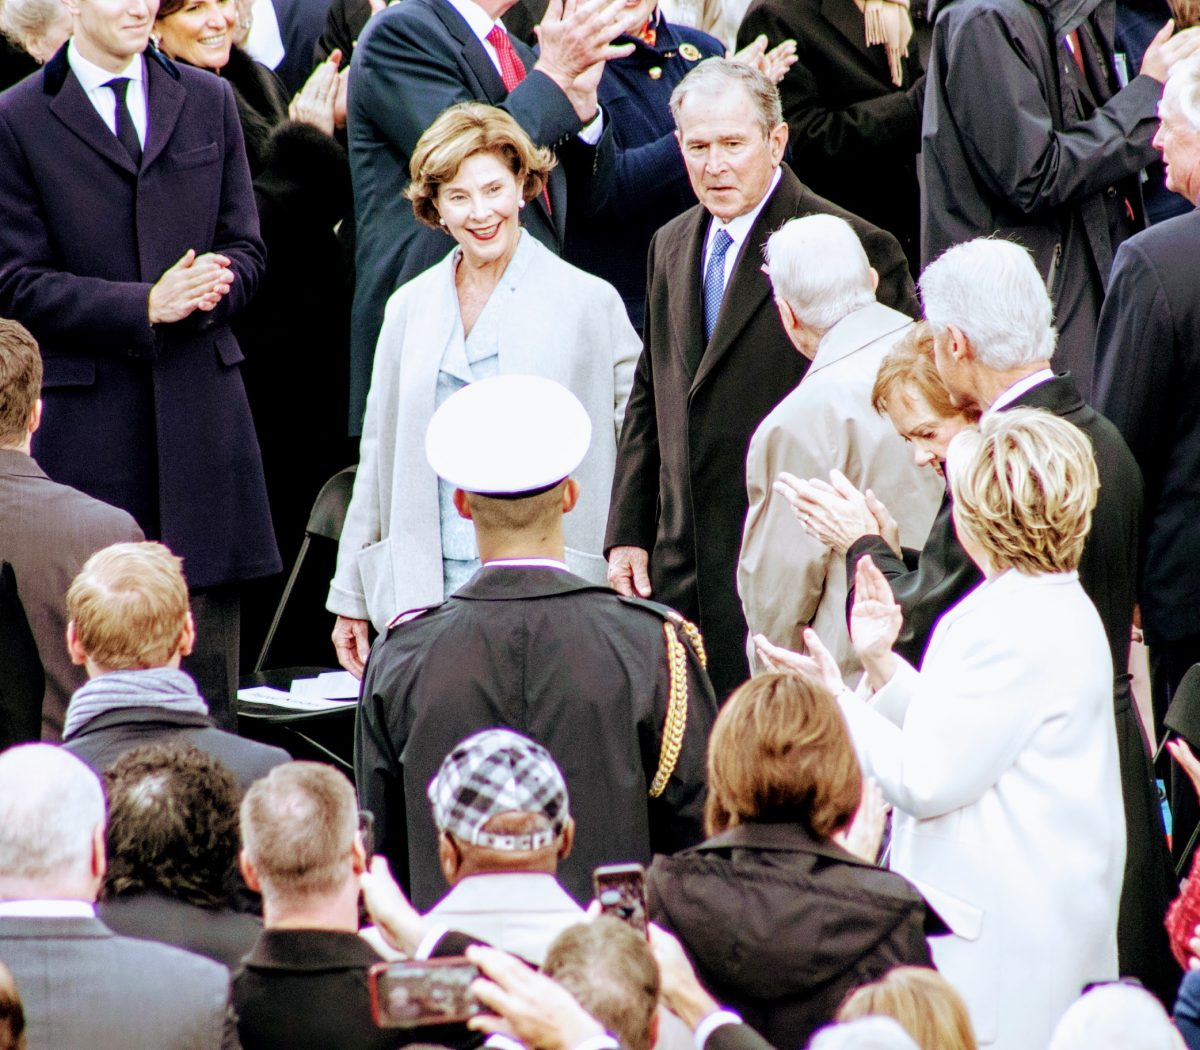 The 43rd President George W. Bush along with his wife Laura arrive at the swearing-in for the 45th President. /Photo by Shevry Lassiter